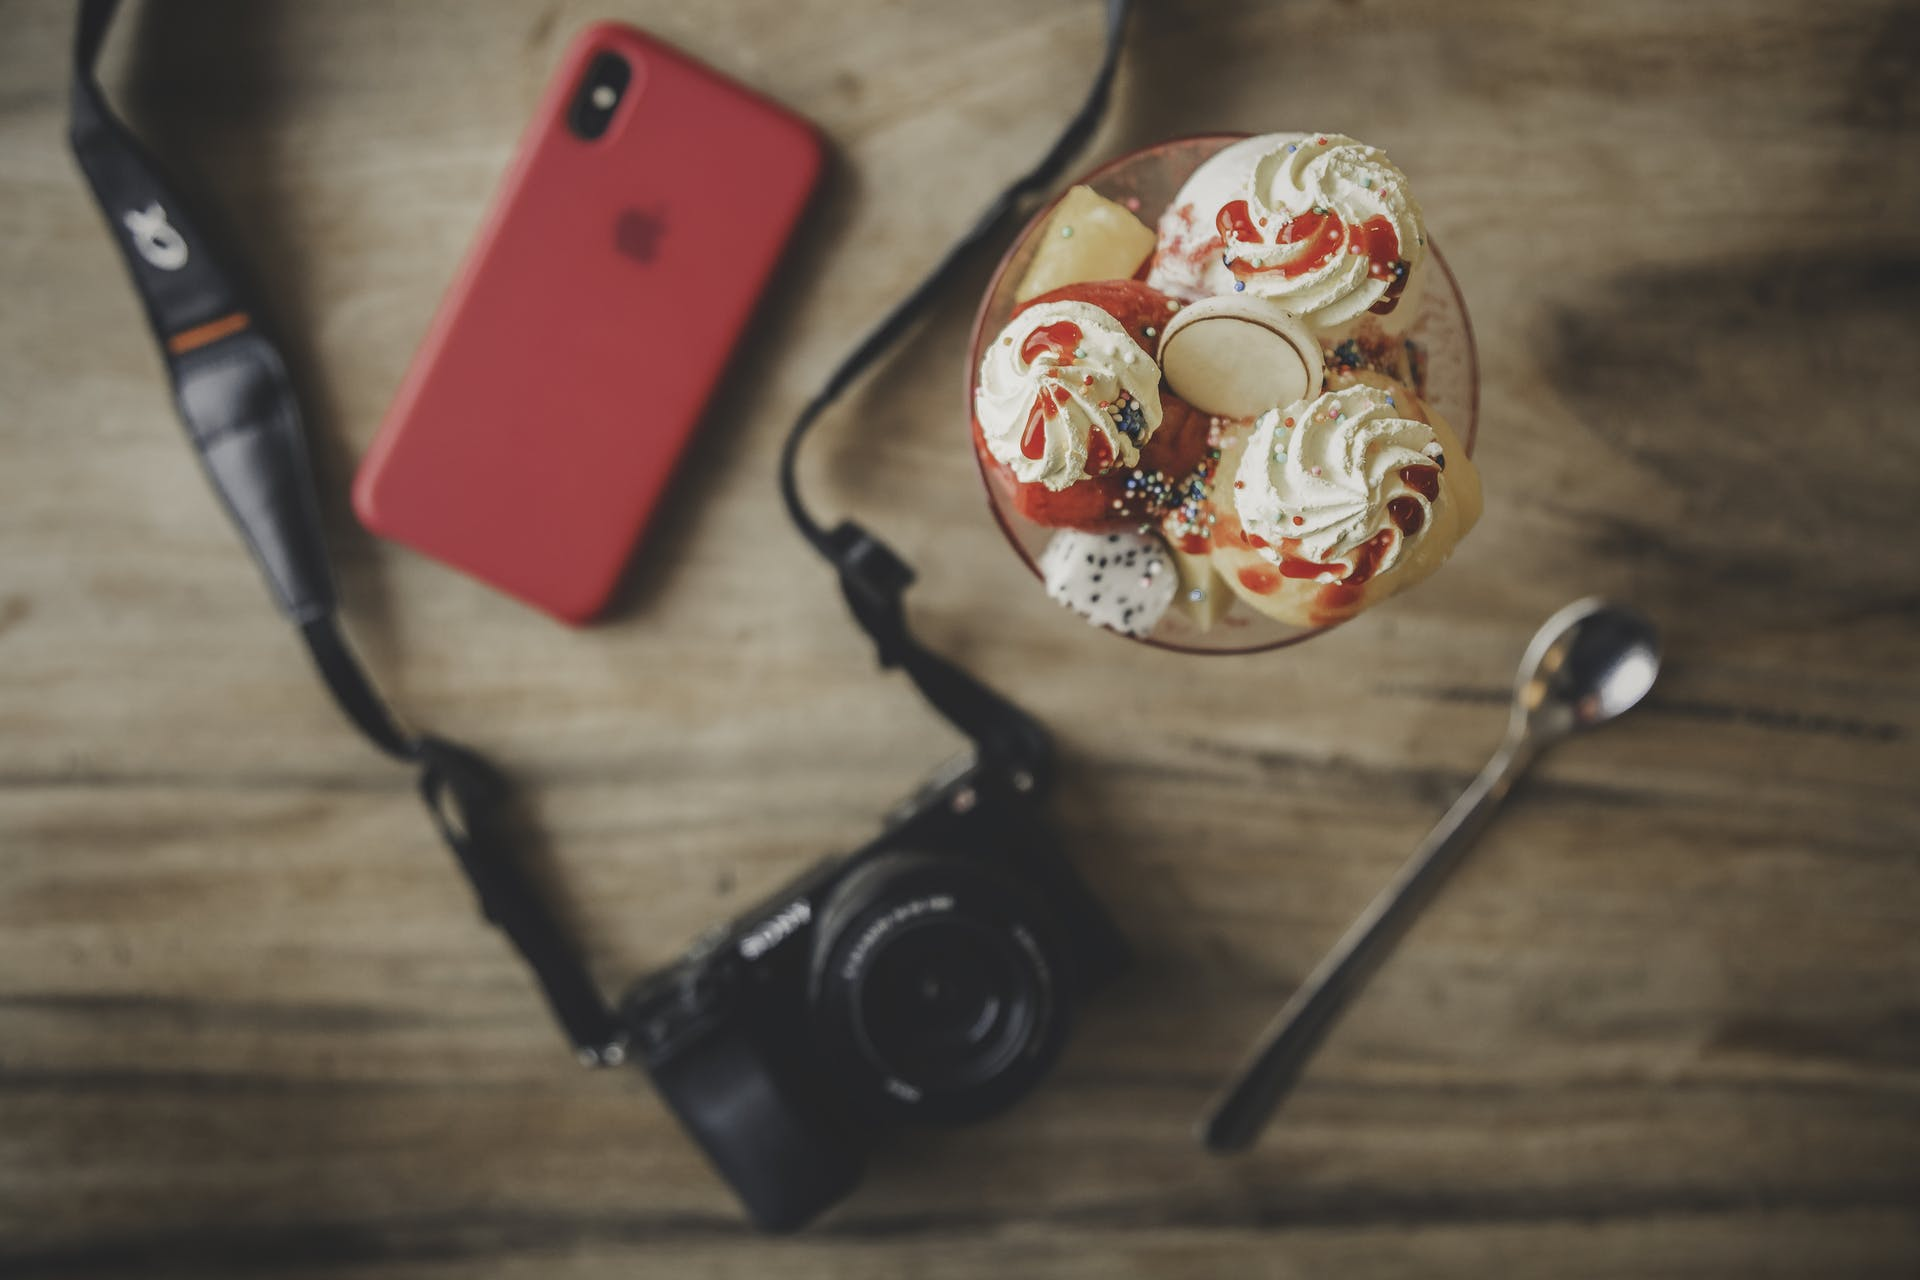 cell phone sweets camera electronics food smartphone